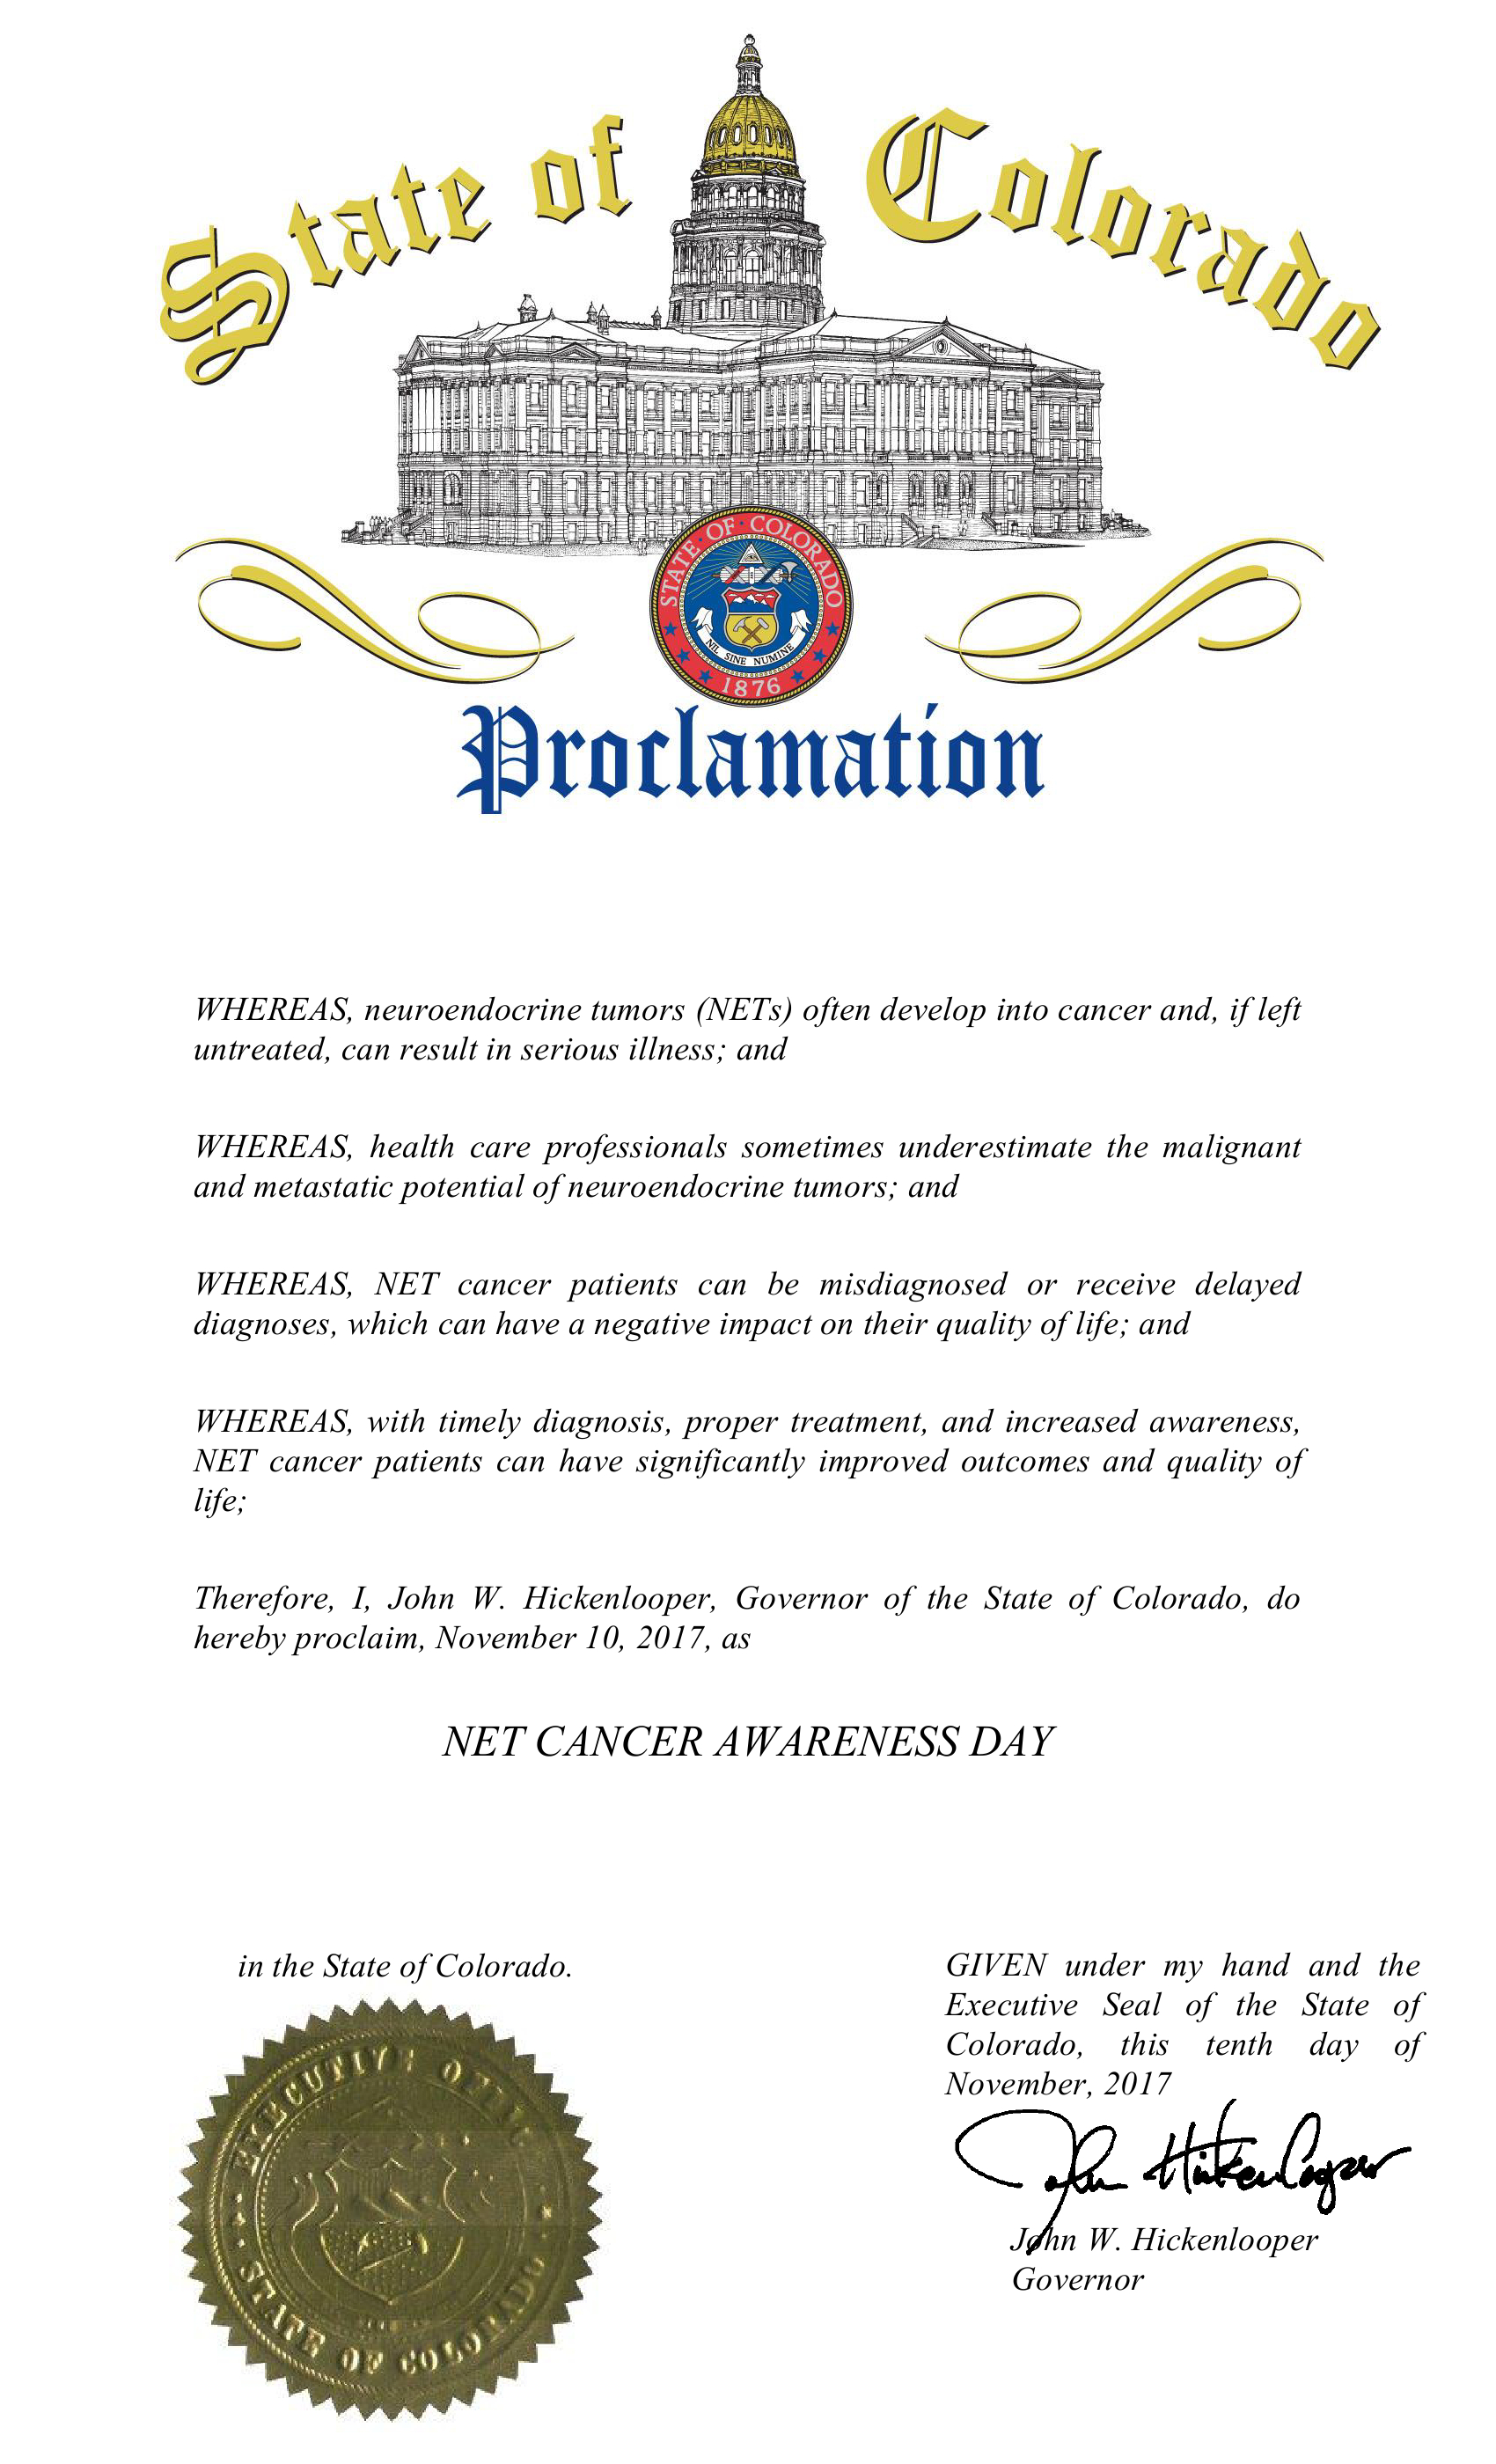 NET Awareness Day Proclamation 2017